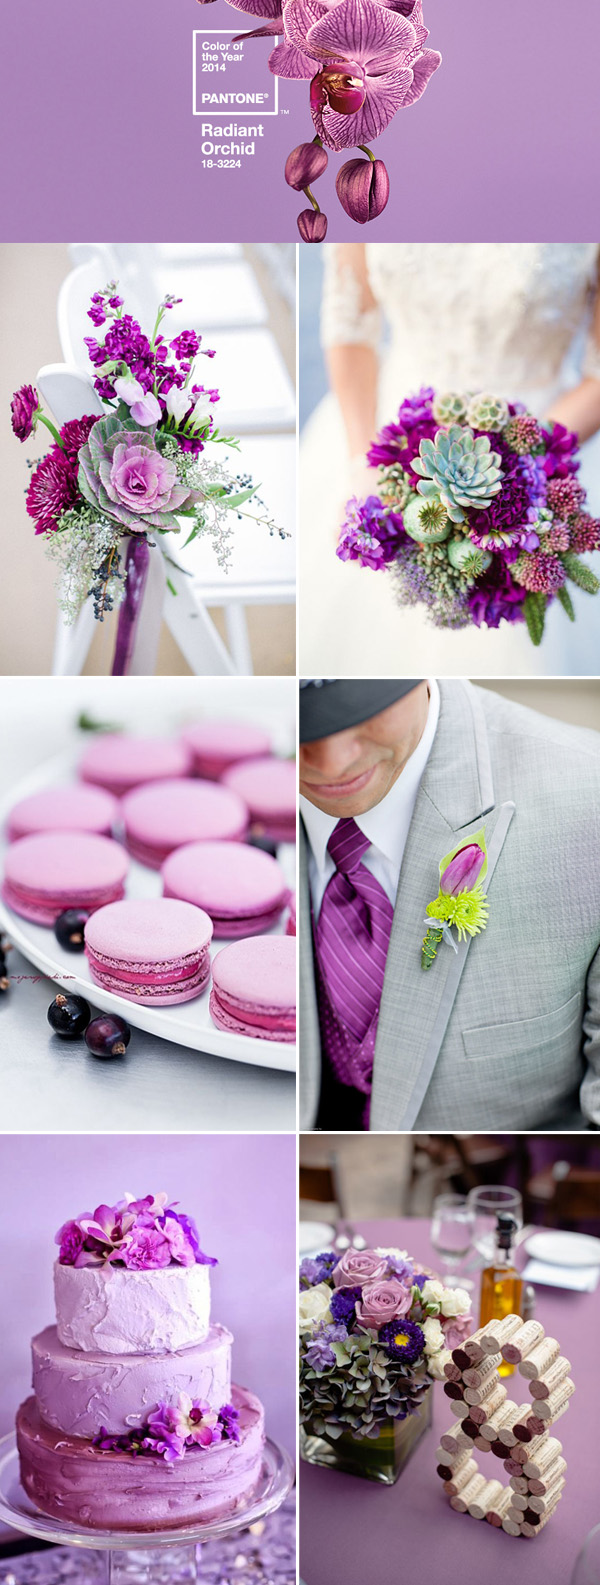 the best wedding color ideas in radiant orchid